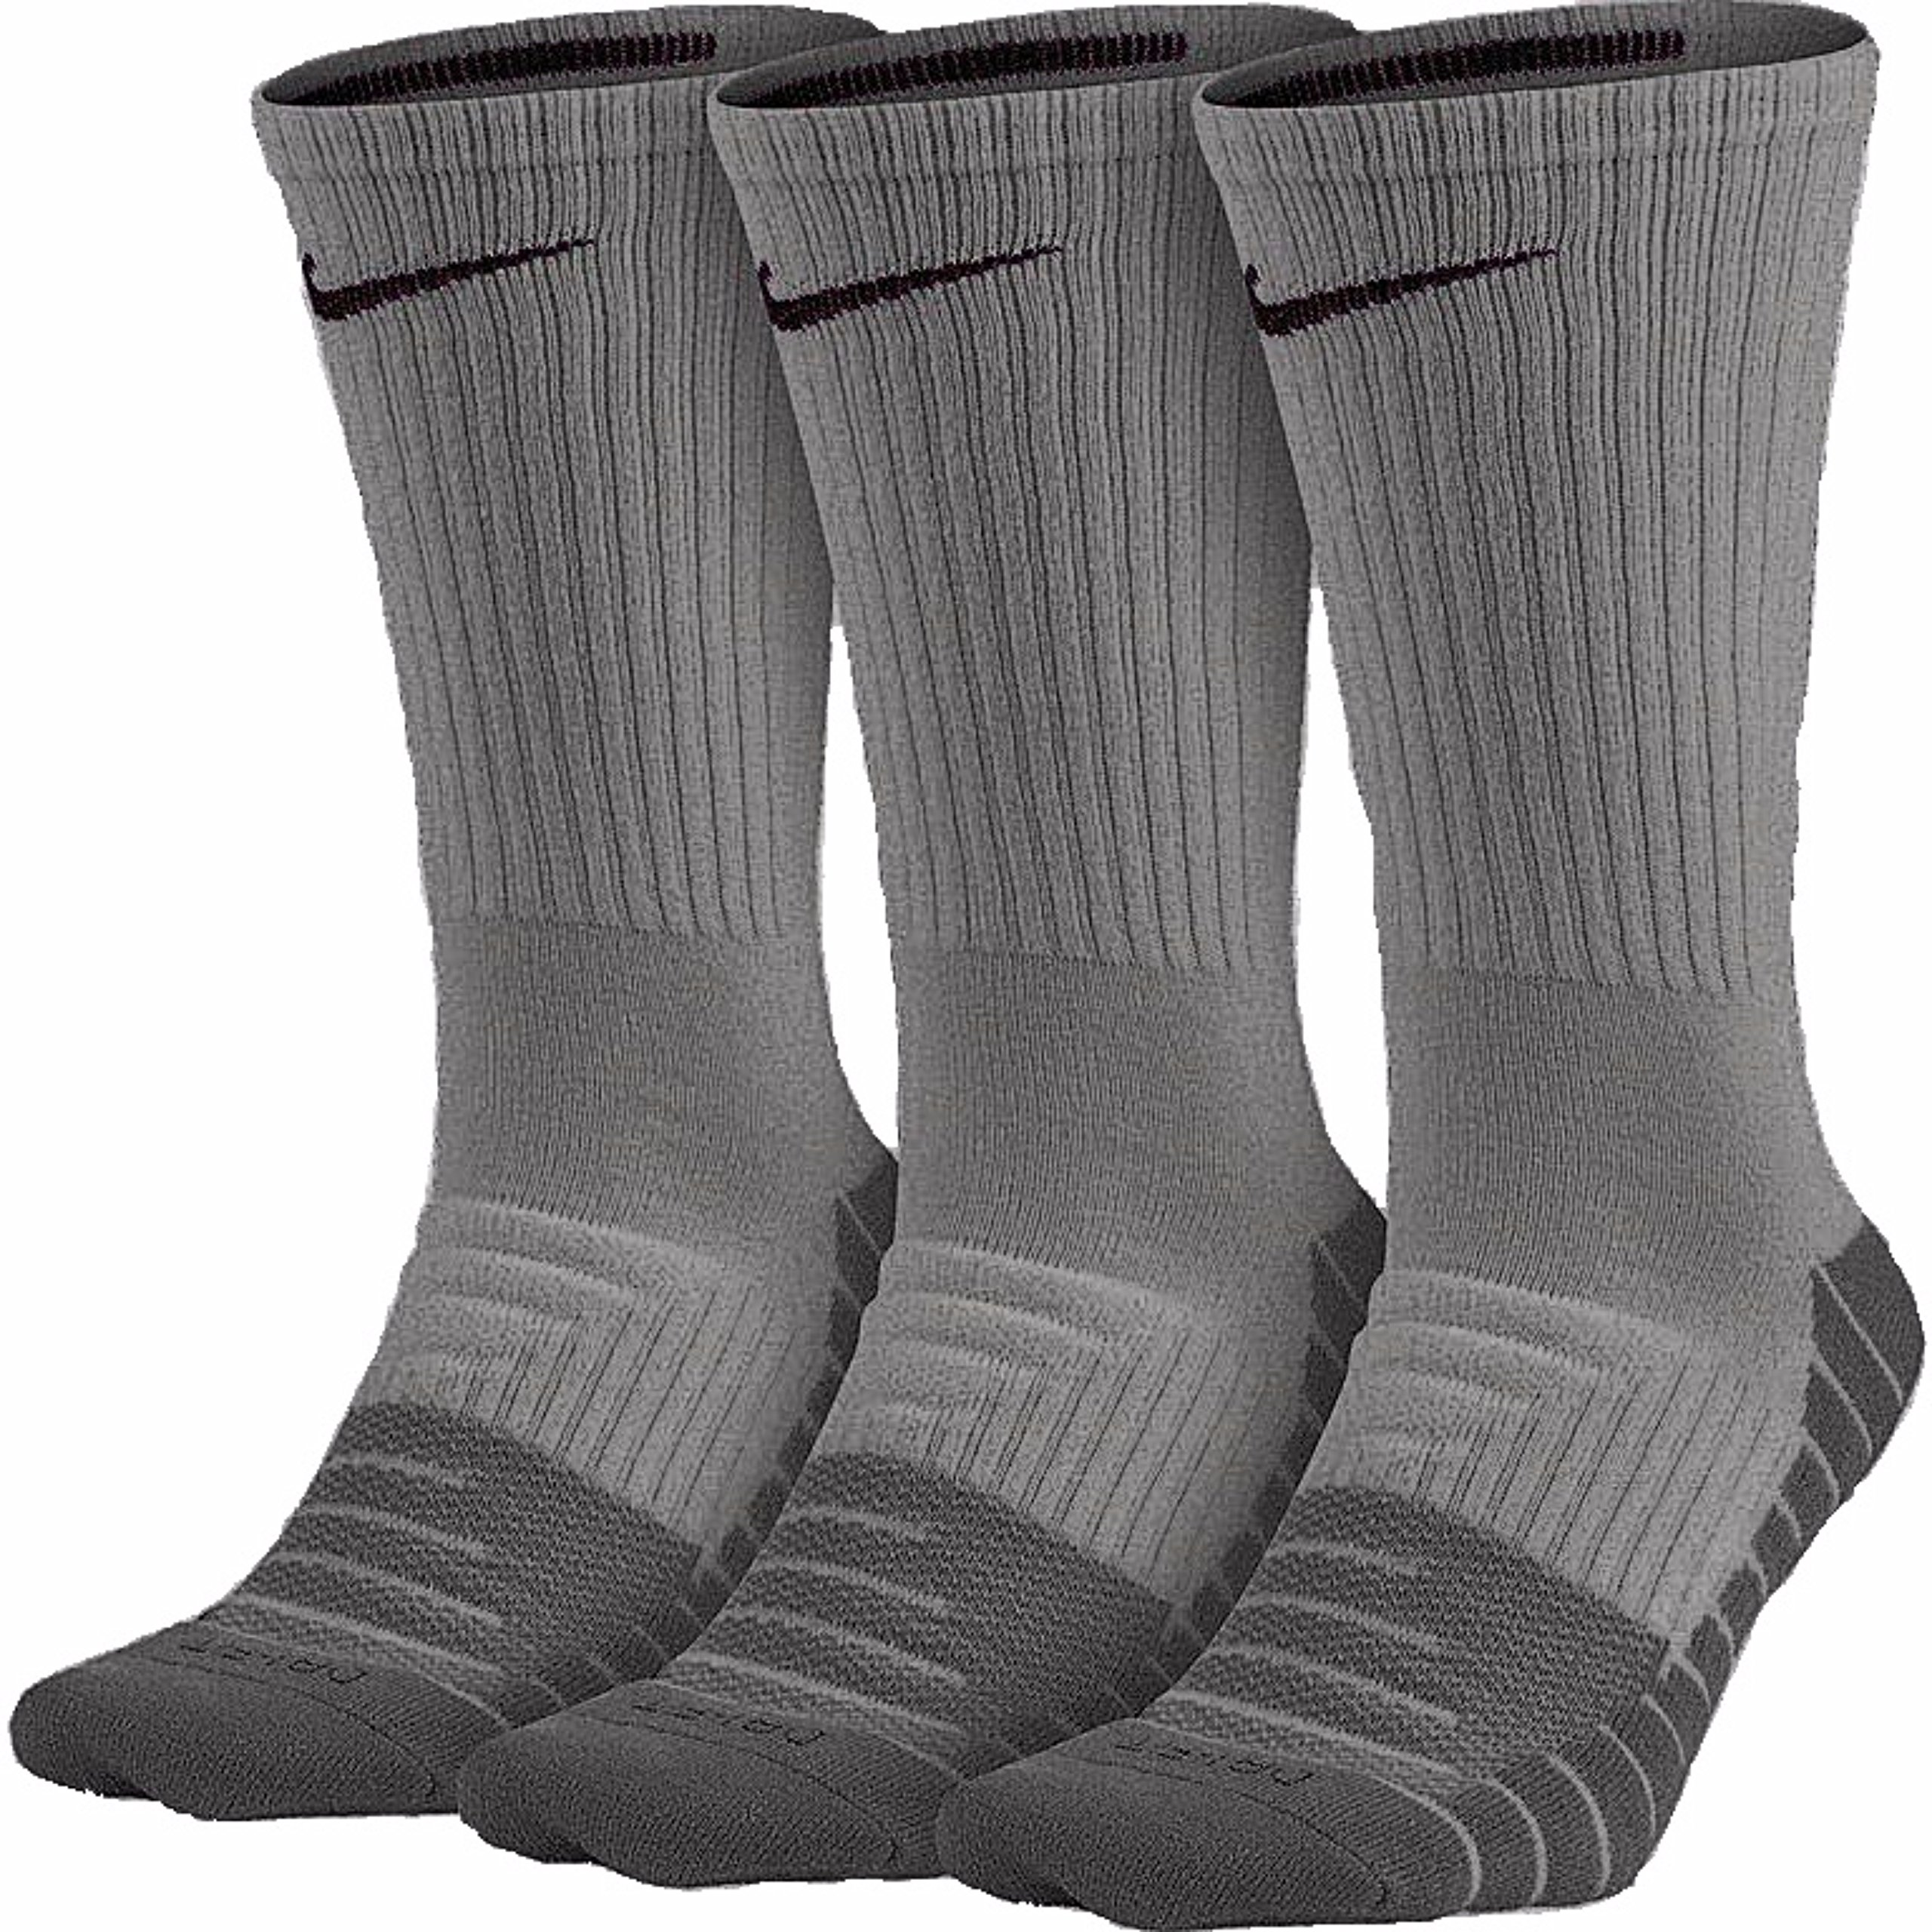 Nike Mens Dri-Fit Cushioned Crew Socks - 3 Pairs (Heather/Cl;oud Blakc/Grey, Large ( 8-12)) by Nike